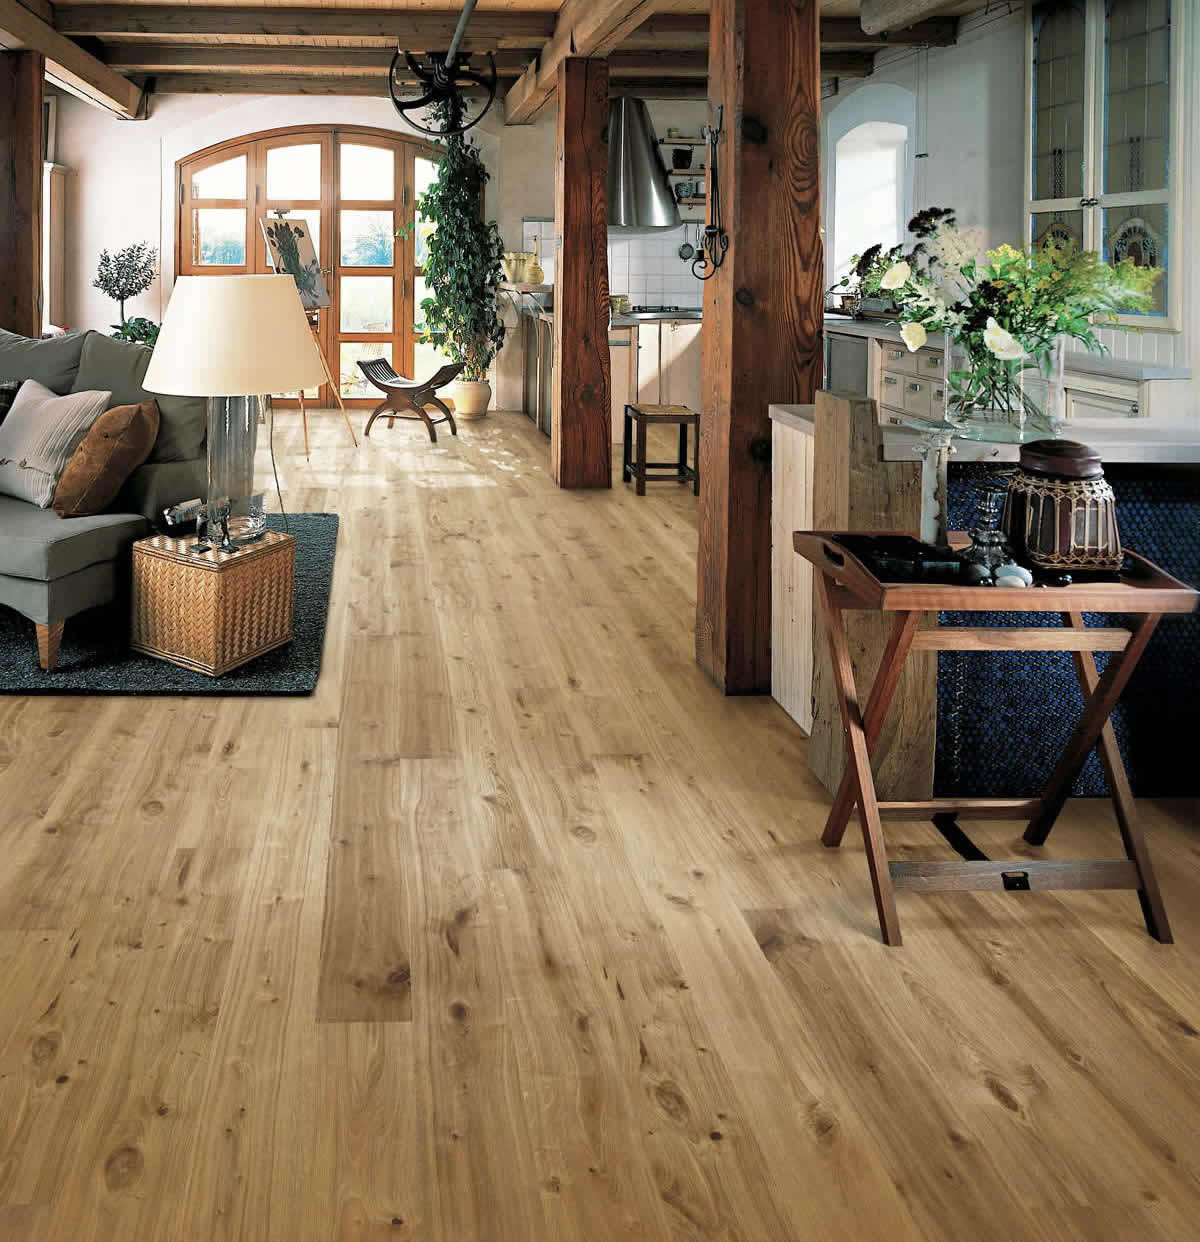 Kahrs oak vedbo for Kahrs flooring